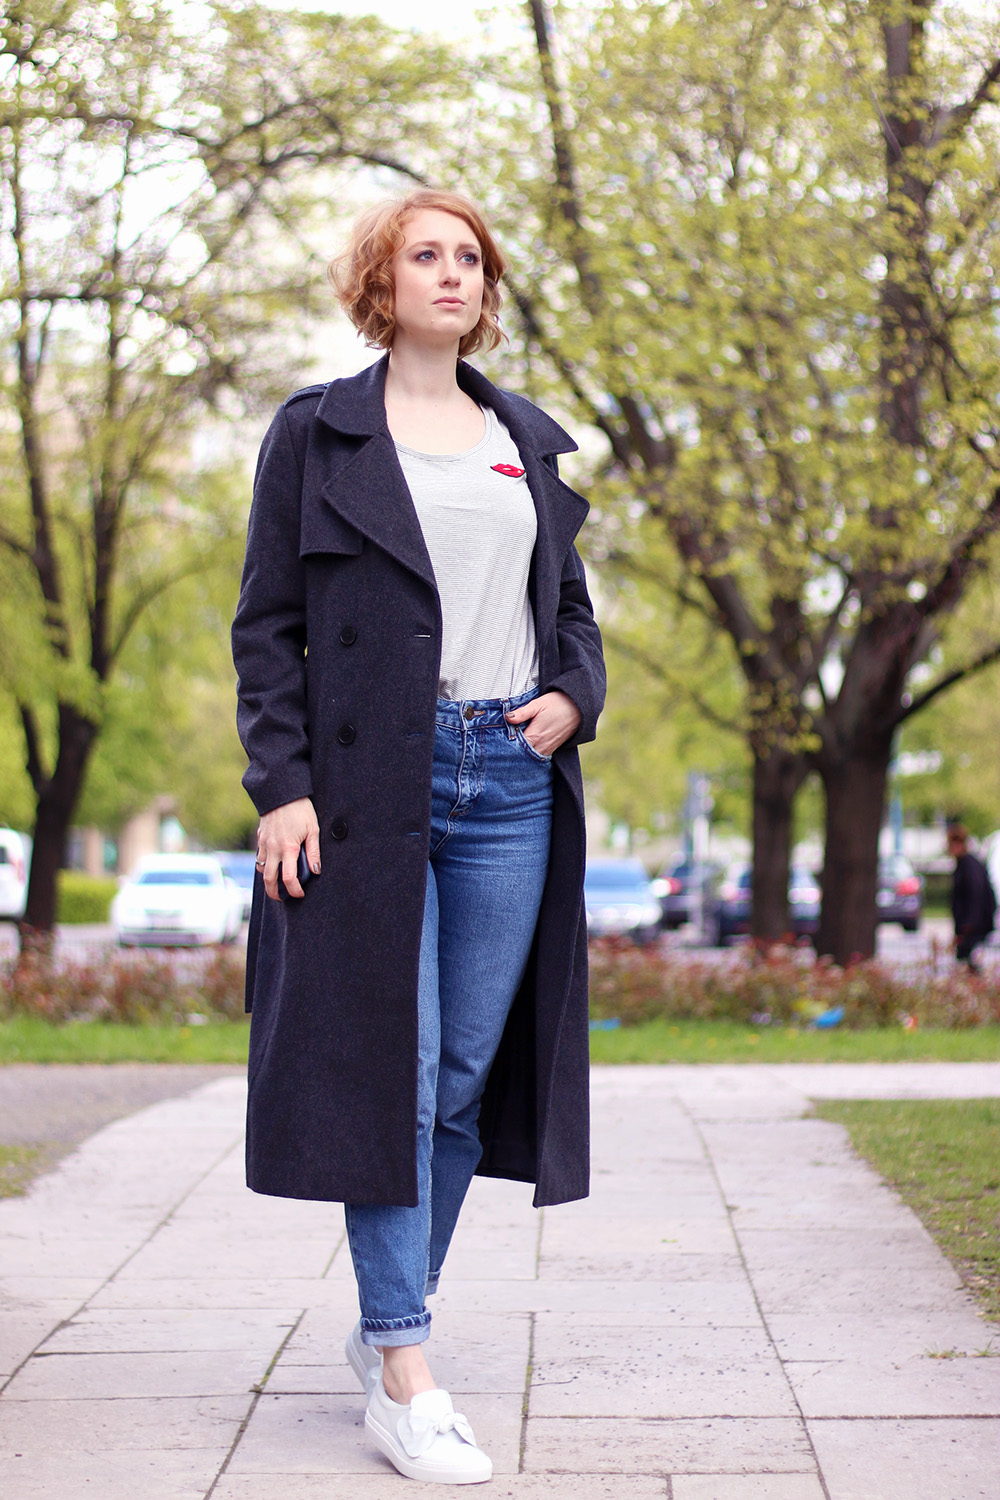 Outfit, Everyday, Casual, Capsule Wardrobe, Spring 2017, Tips, Fashion Tips, Fashion Blog, Berlin, Advanceyourstyle